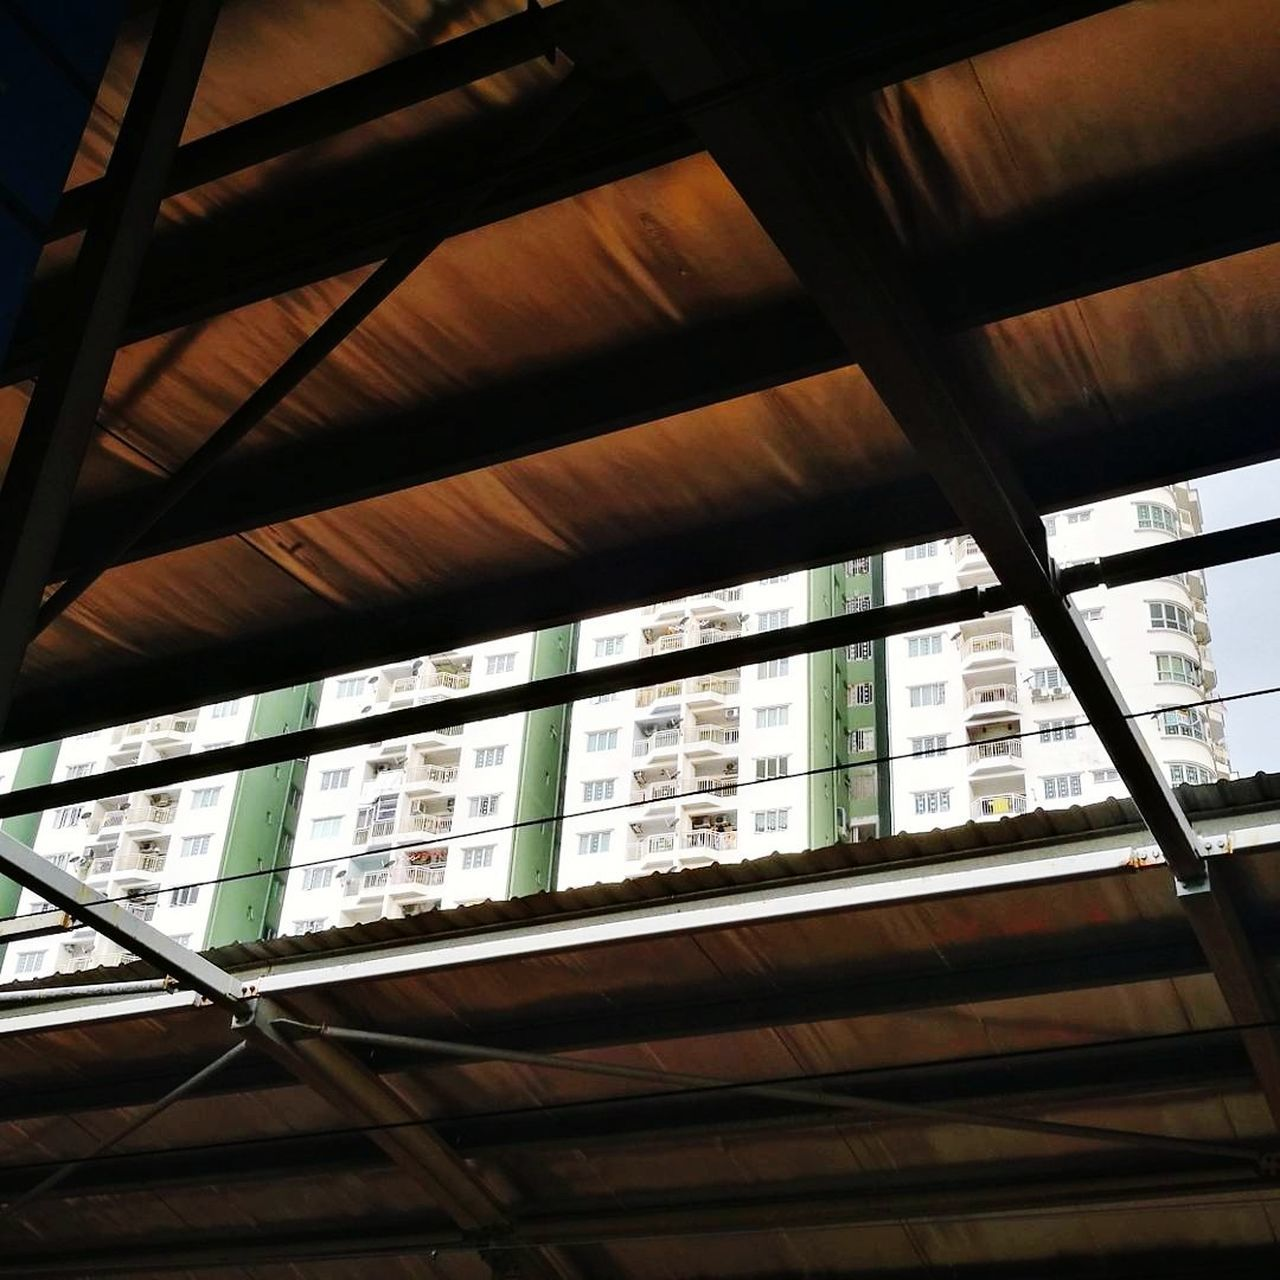 ceiling, indoors, low angle view, window, built structure, architecture, day, no people, close-up